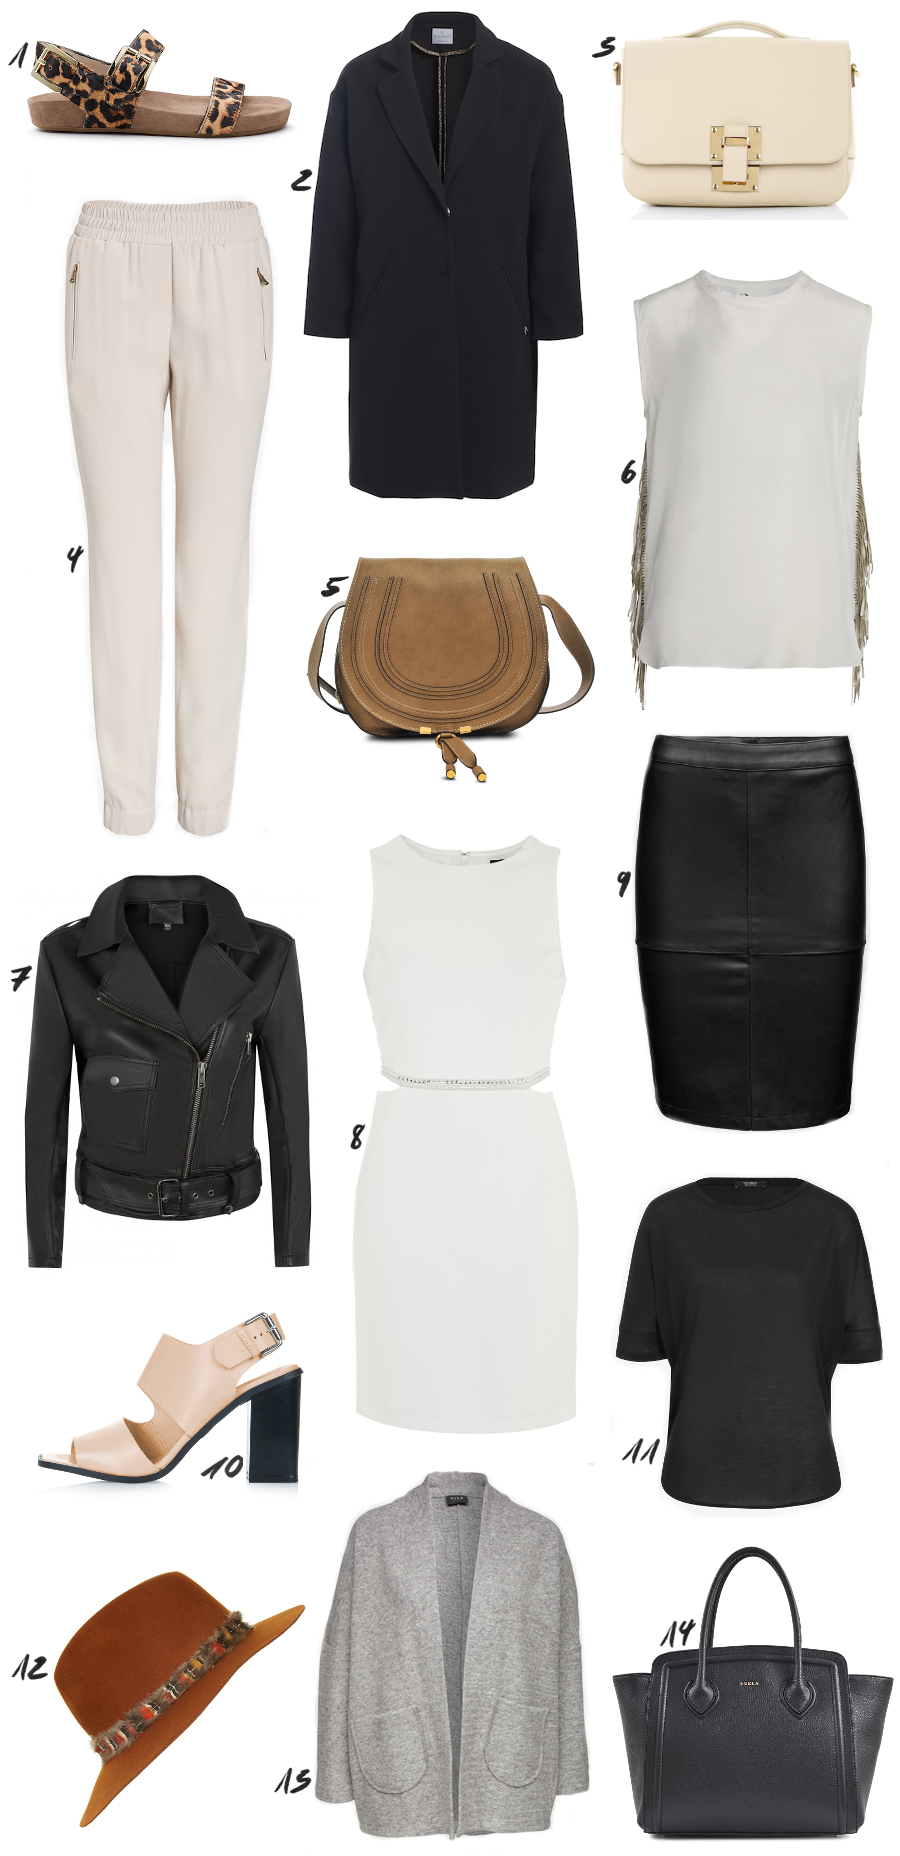 Black and Nude Spring Outfit Ideas